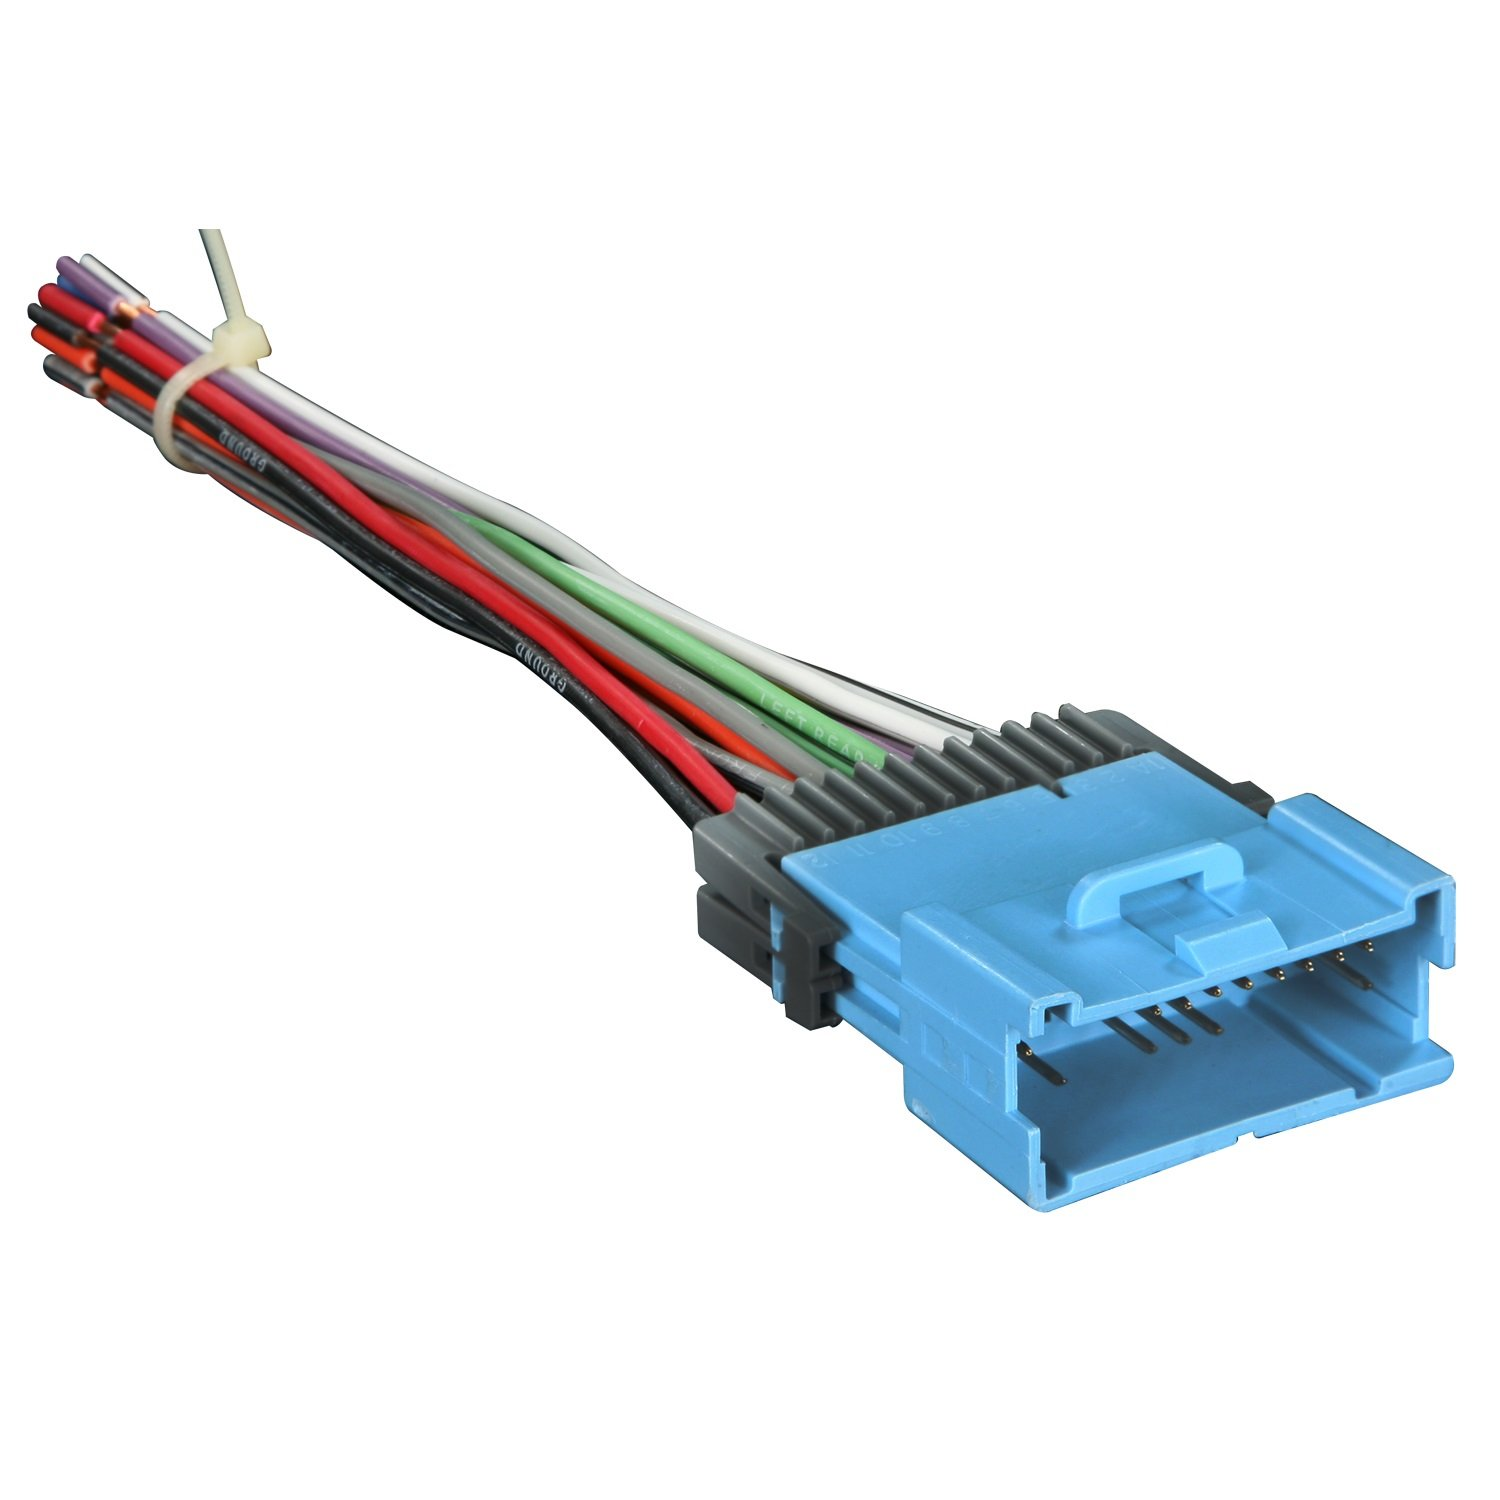 61ruWw 2aJL._SL1500_ amazon com metra 70 2102 radio wiring harness for gm 04 05 car  at readyjetset.co